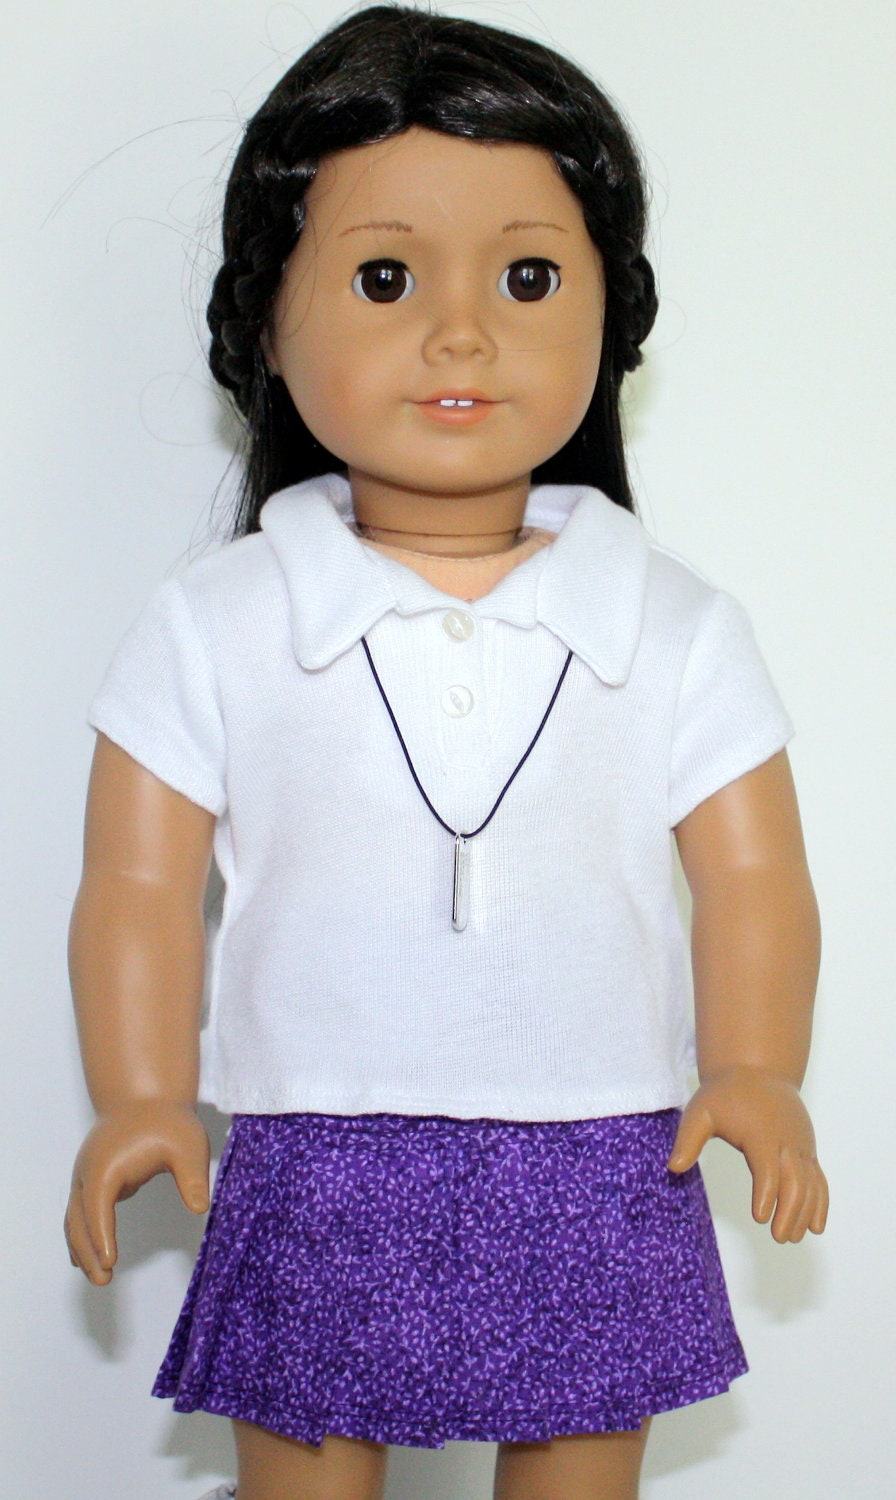 American Girl Doll White Knit Polo Shirt Purple Print Pleated Skirt  Charm Necklace - JessieAmerica